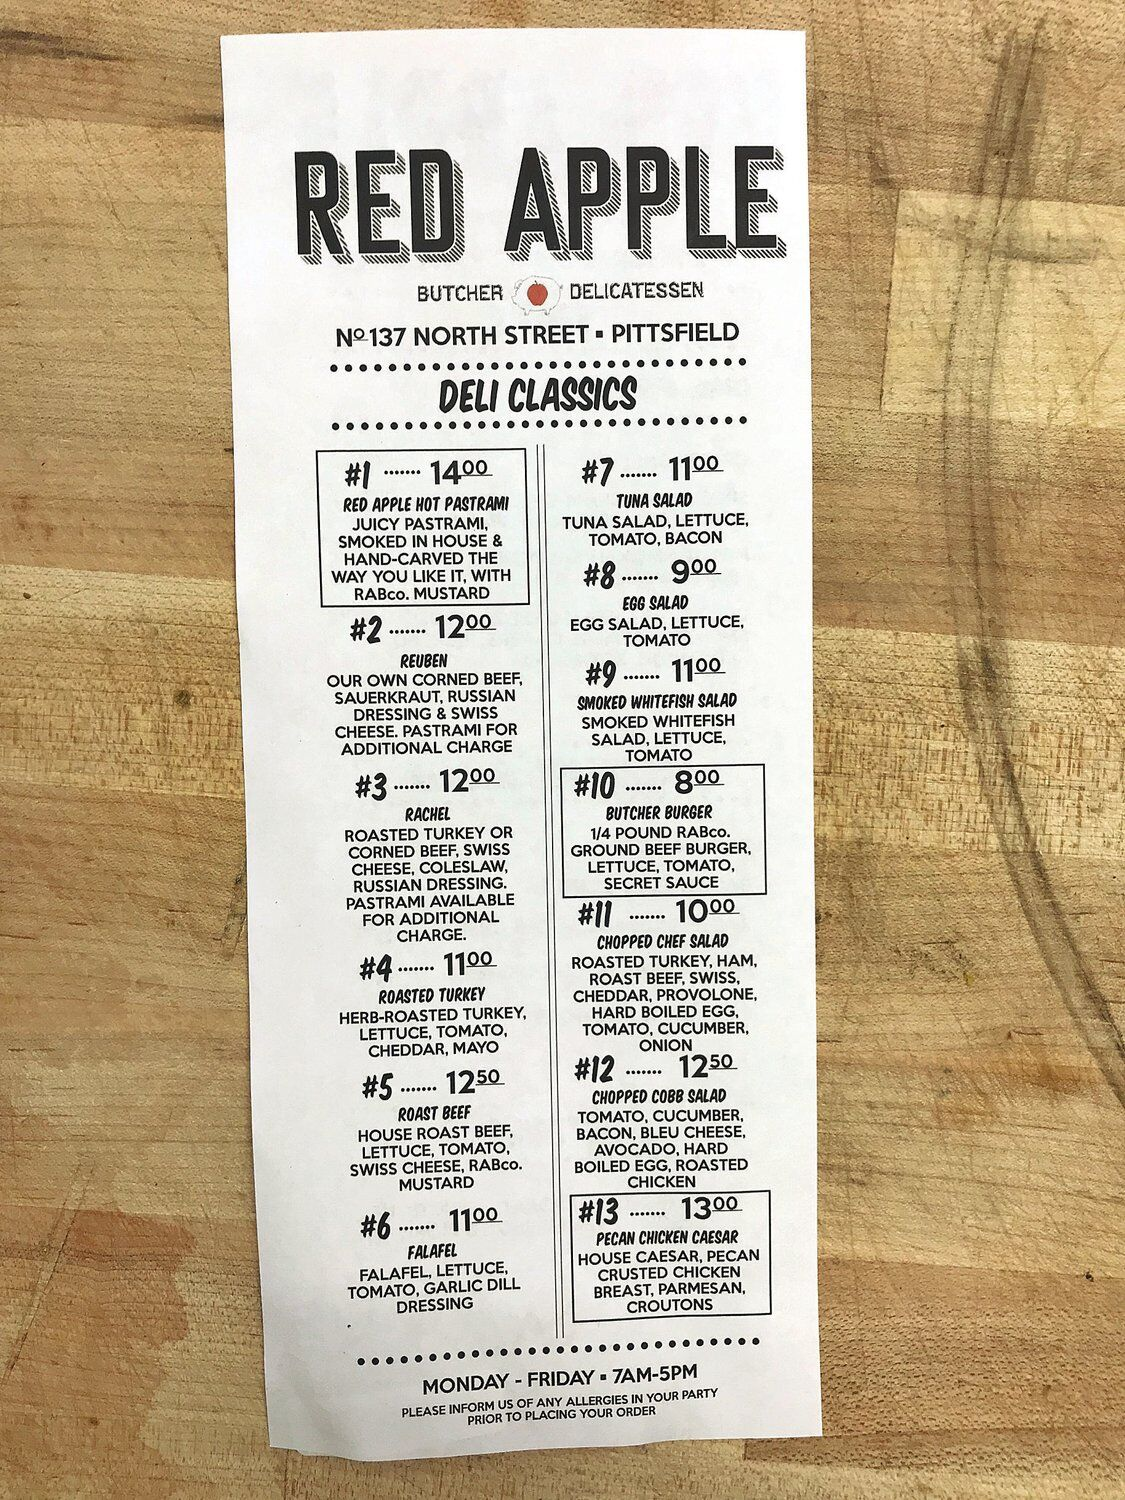 Red Apple Butchers picking up where it left off